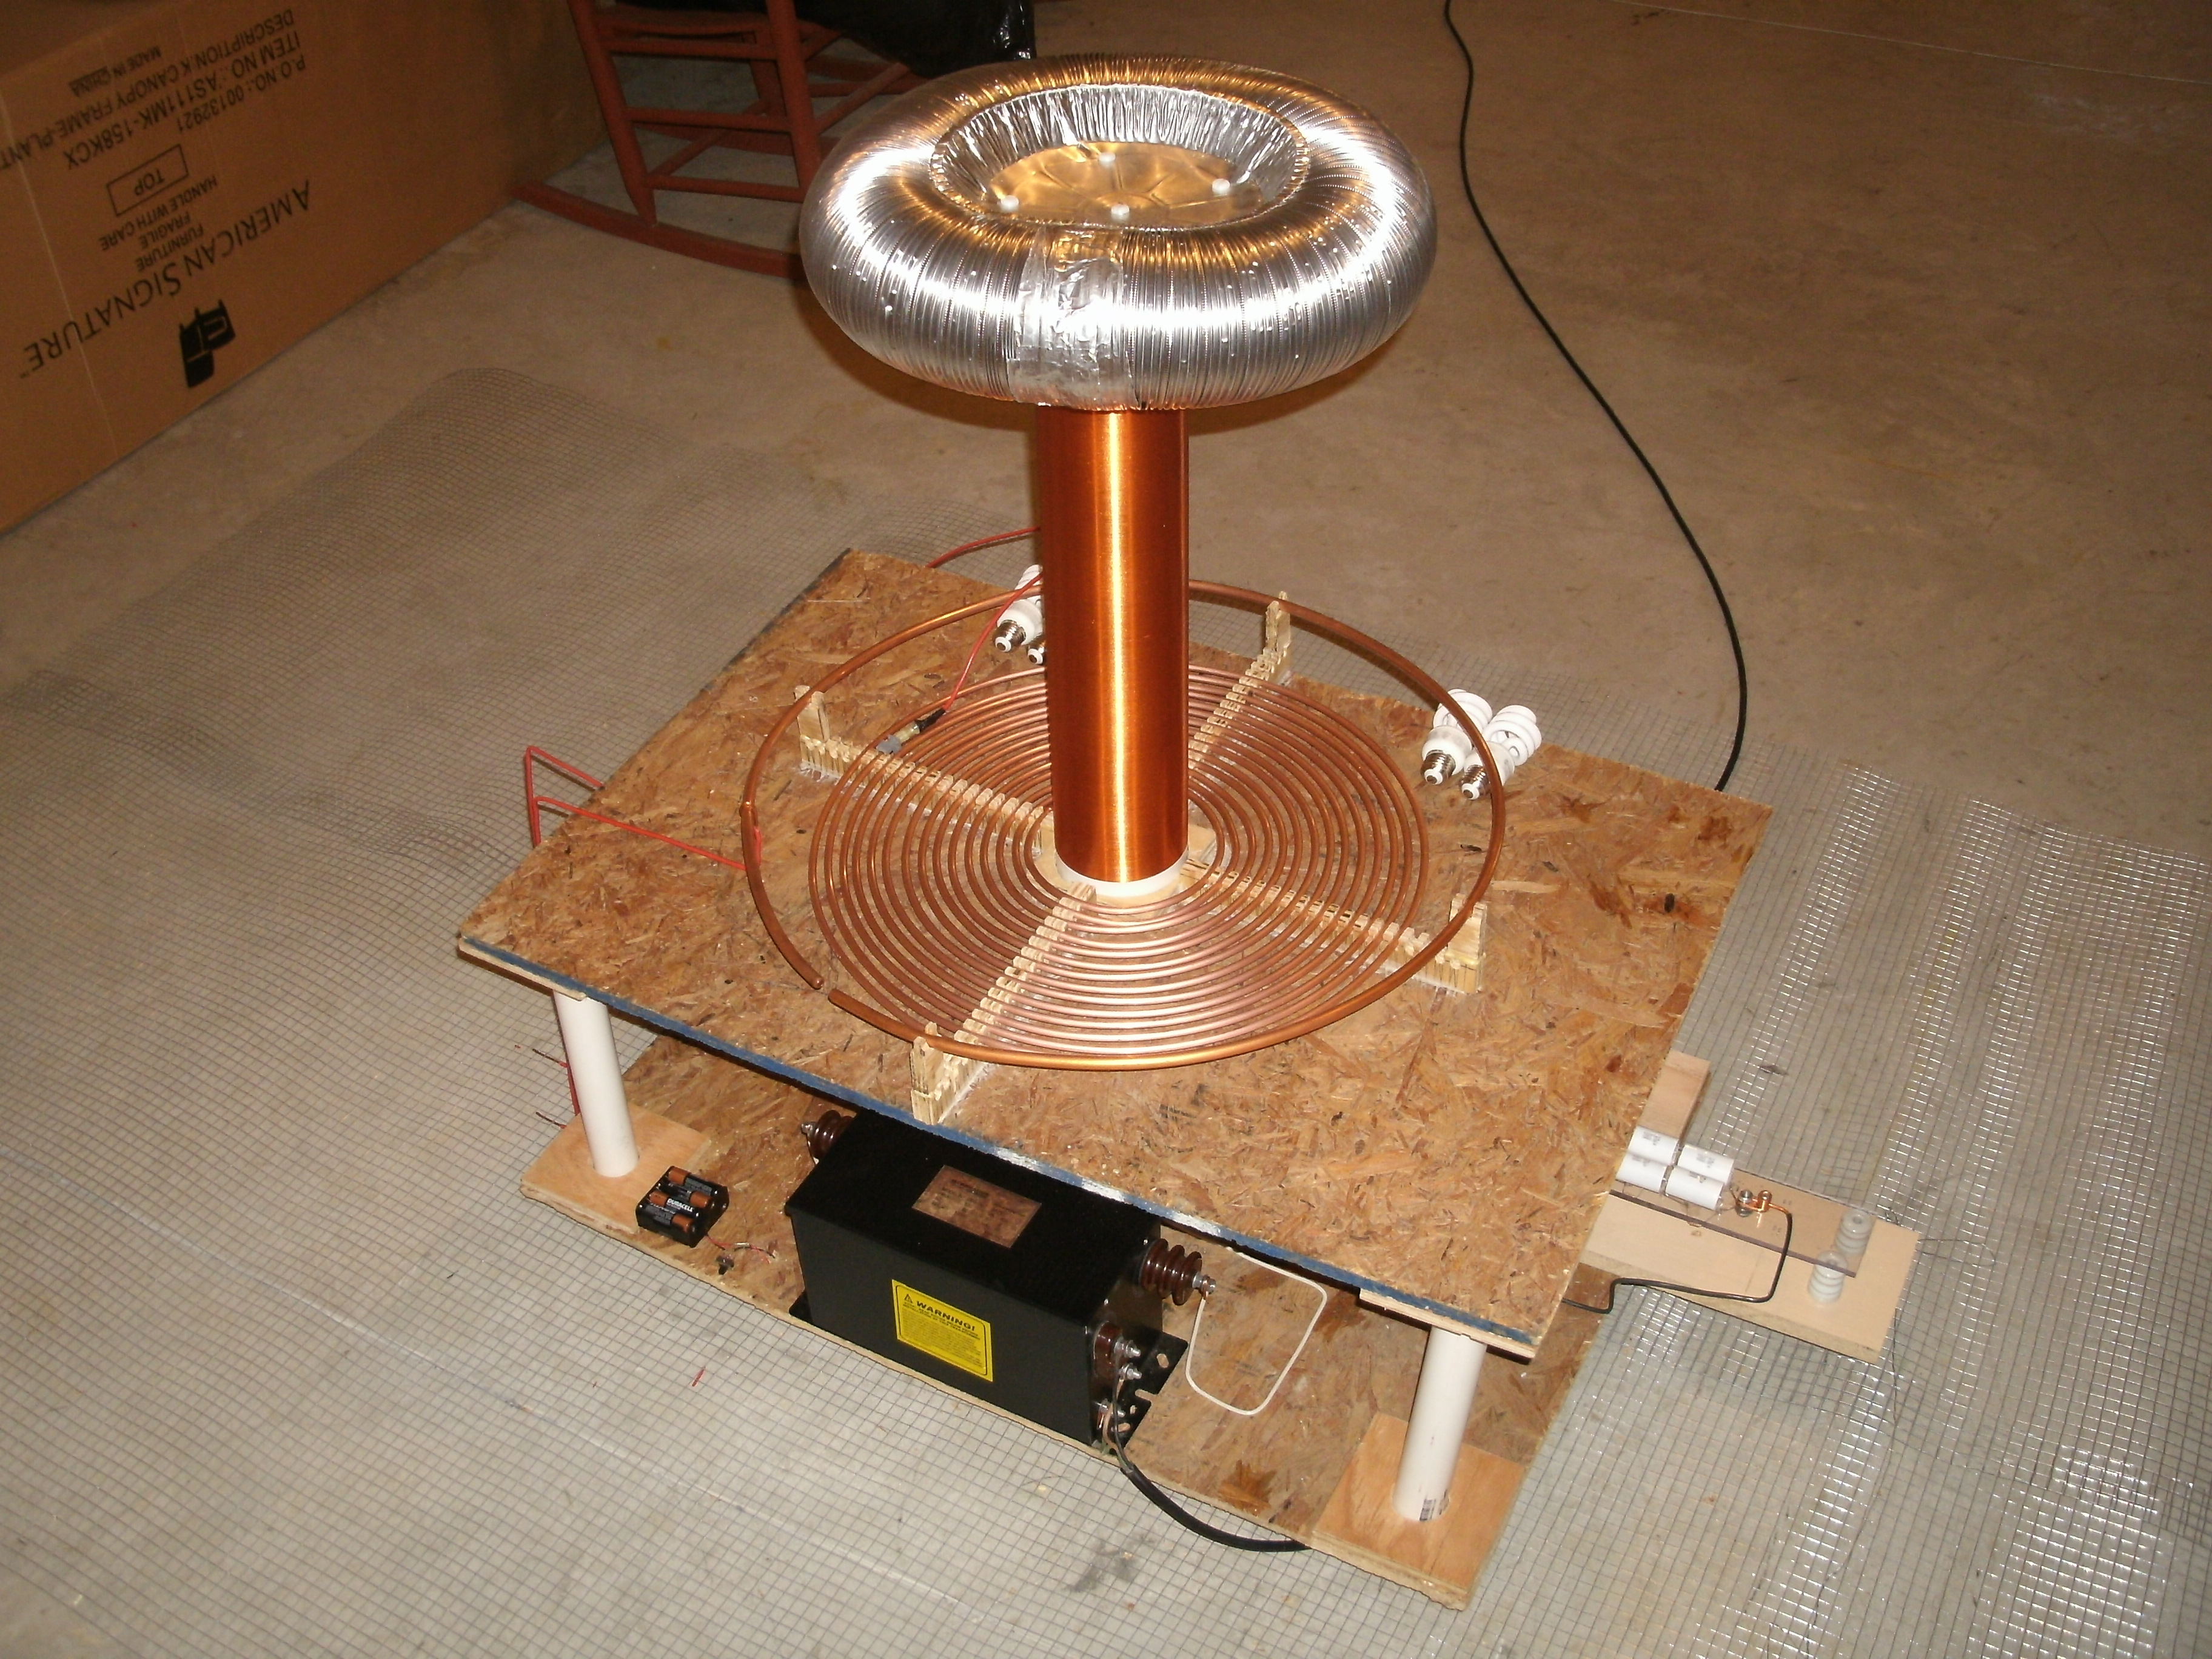 Building a Tesla Coil In 9 Easy Steps!